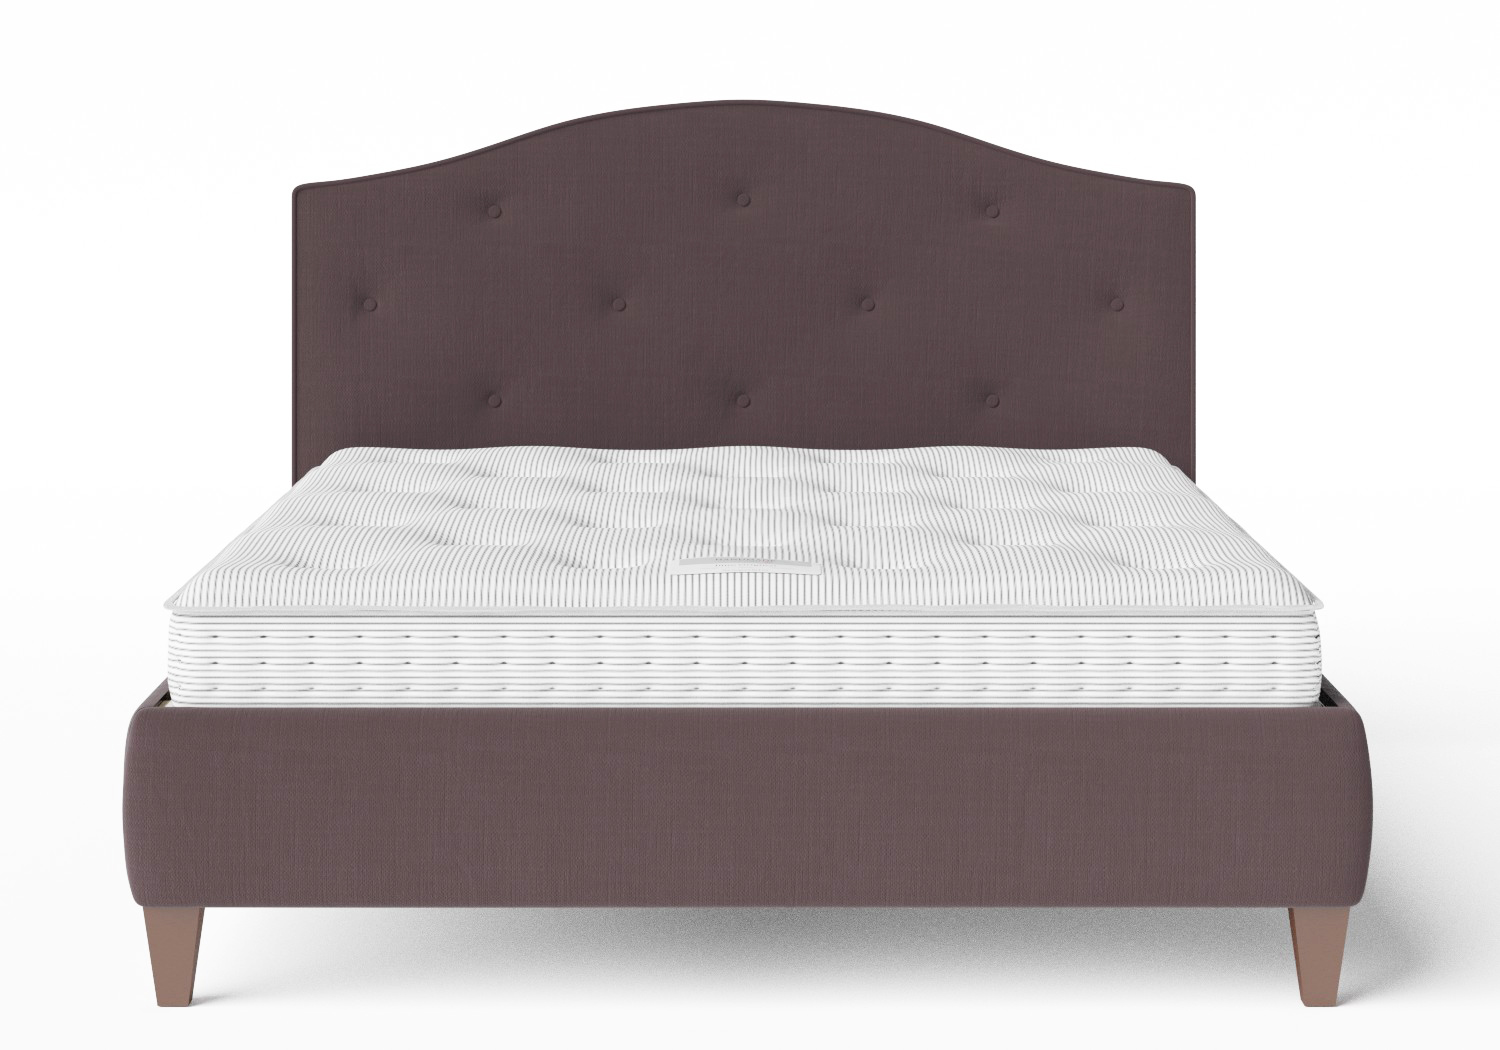 Daniella Upholstered bed in Aubergine fabric with buttoning shown with Juno 1 mattress